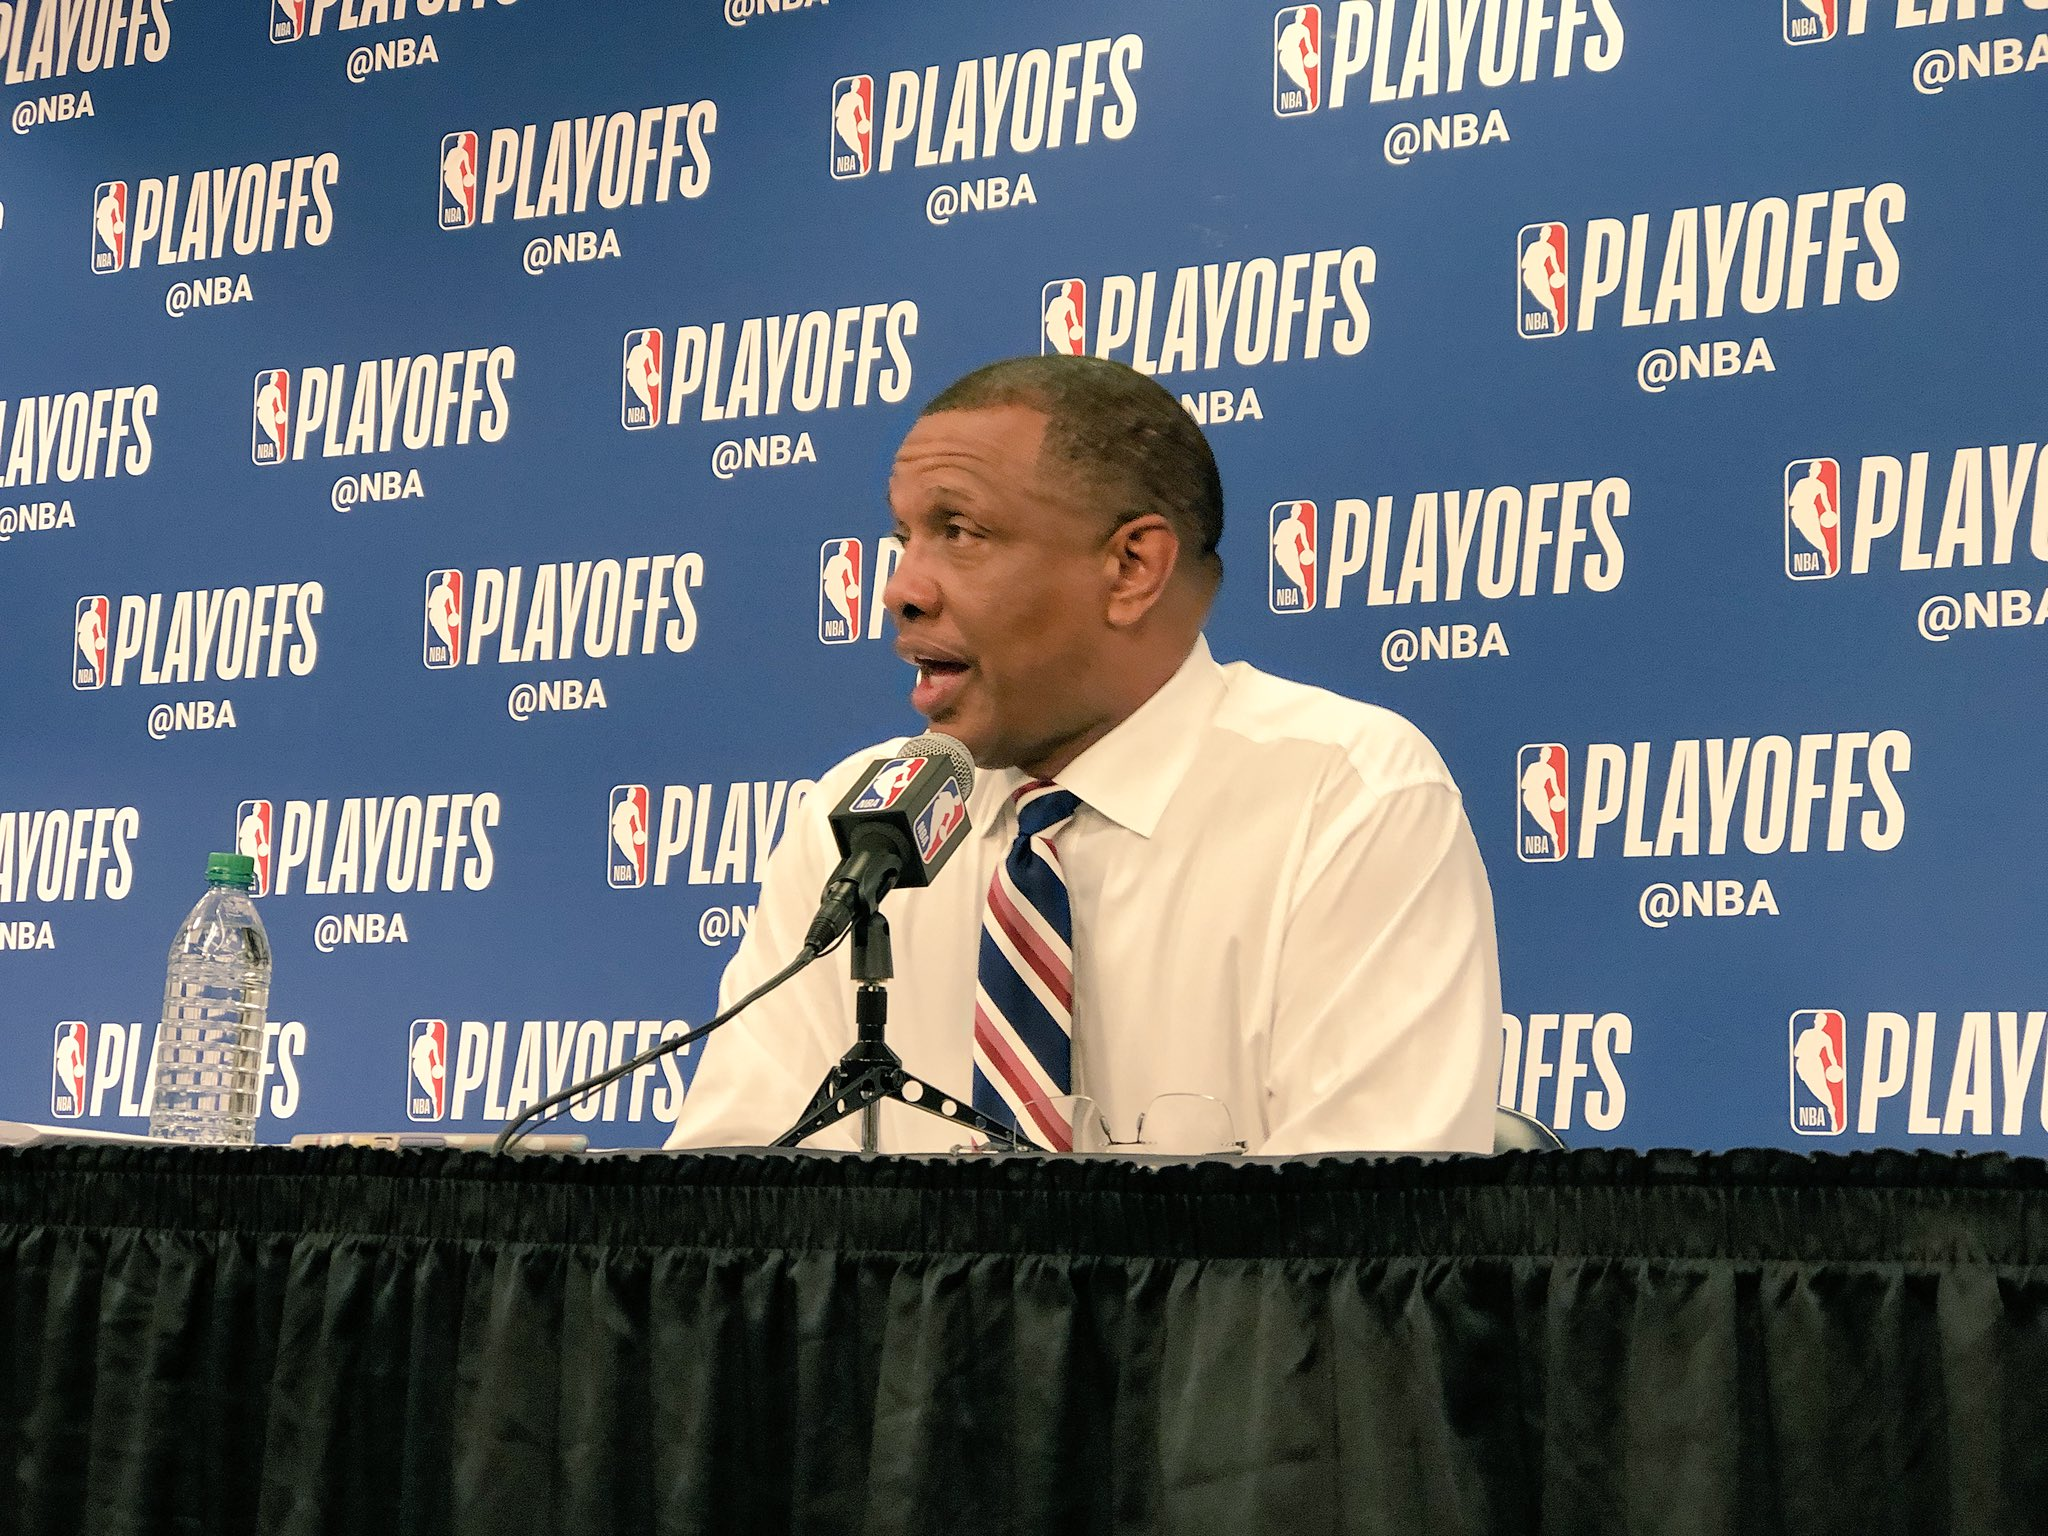 Gentry is speaking with the media postgame. Watch live: https://t.co/es6YOqpLj6 #DoItBigger   (Via @dixiebrewco) https://t.co/Hw10Q5Rok5